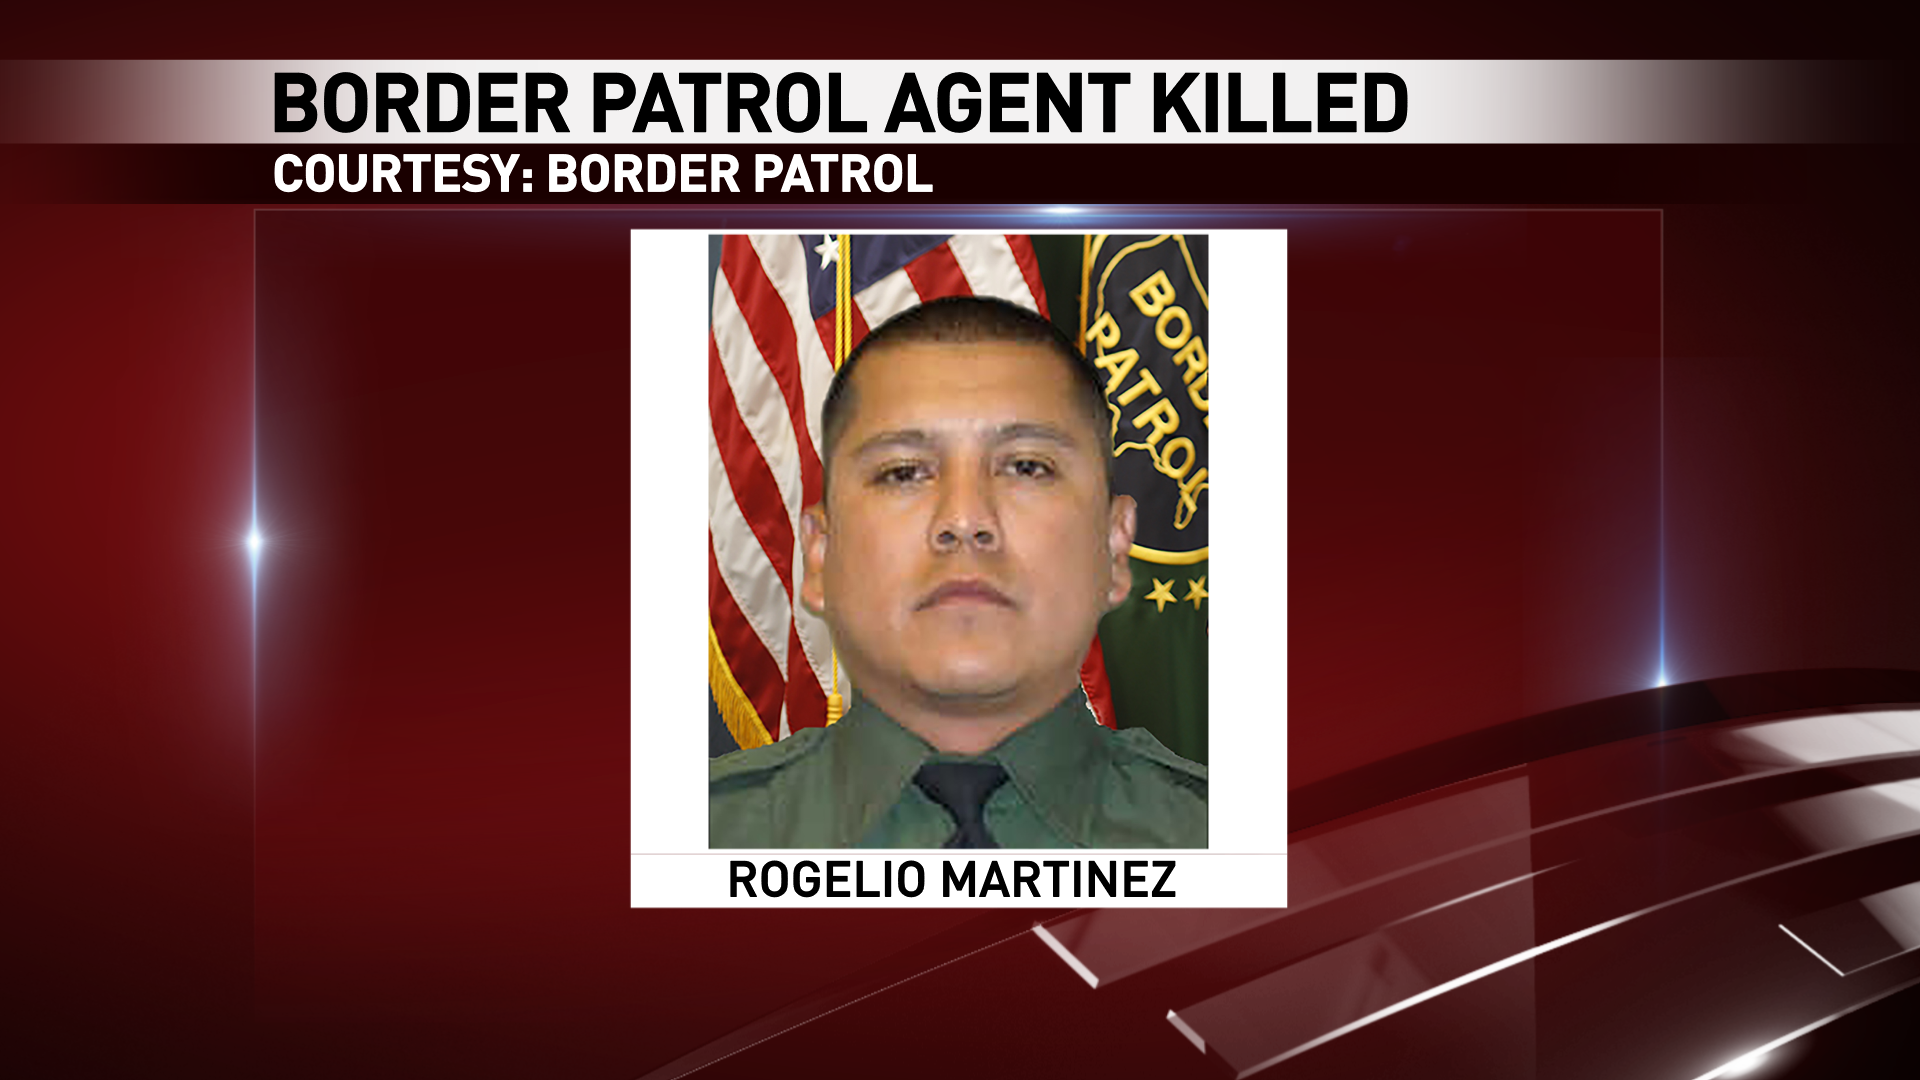 Rogelio Martinez of El Paso was killed in an incident while on duty near Van Horn, Texas Sunday, Nov. 19, 2017. (Courtesy: Border Patrol)